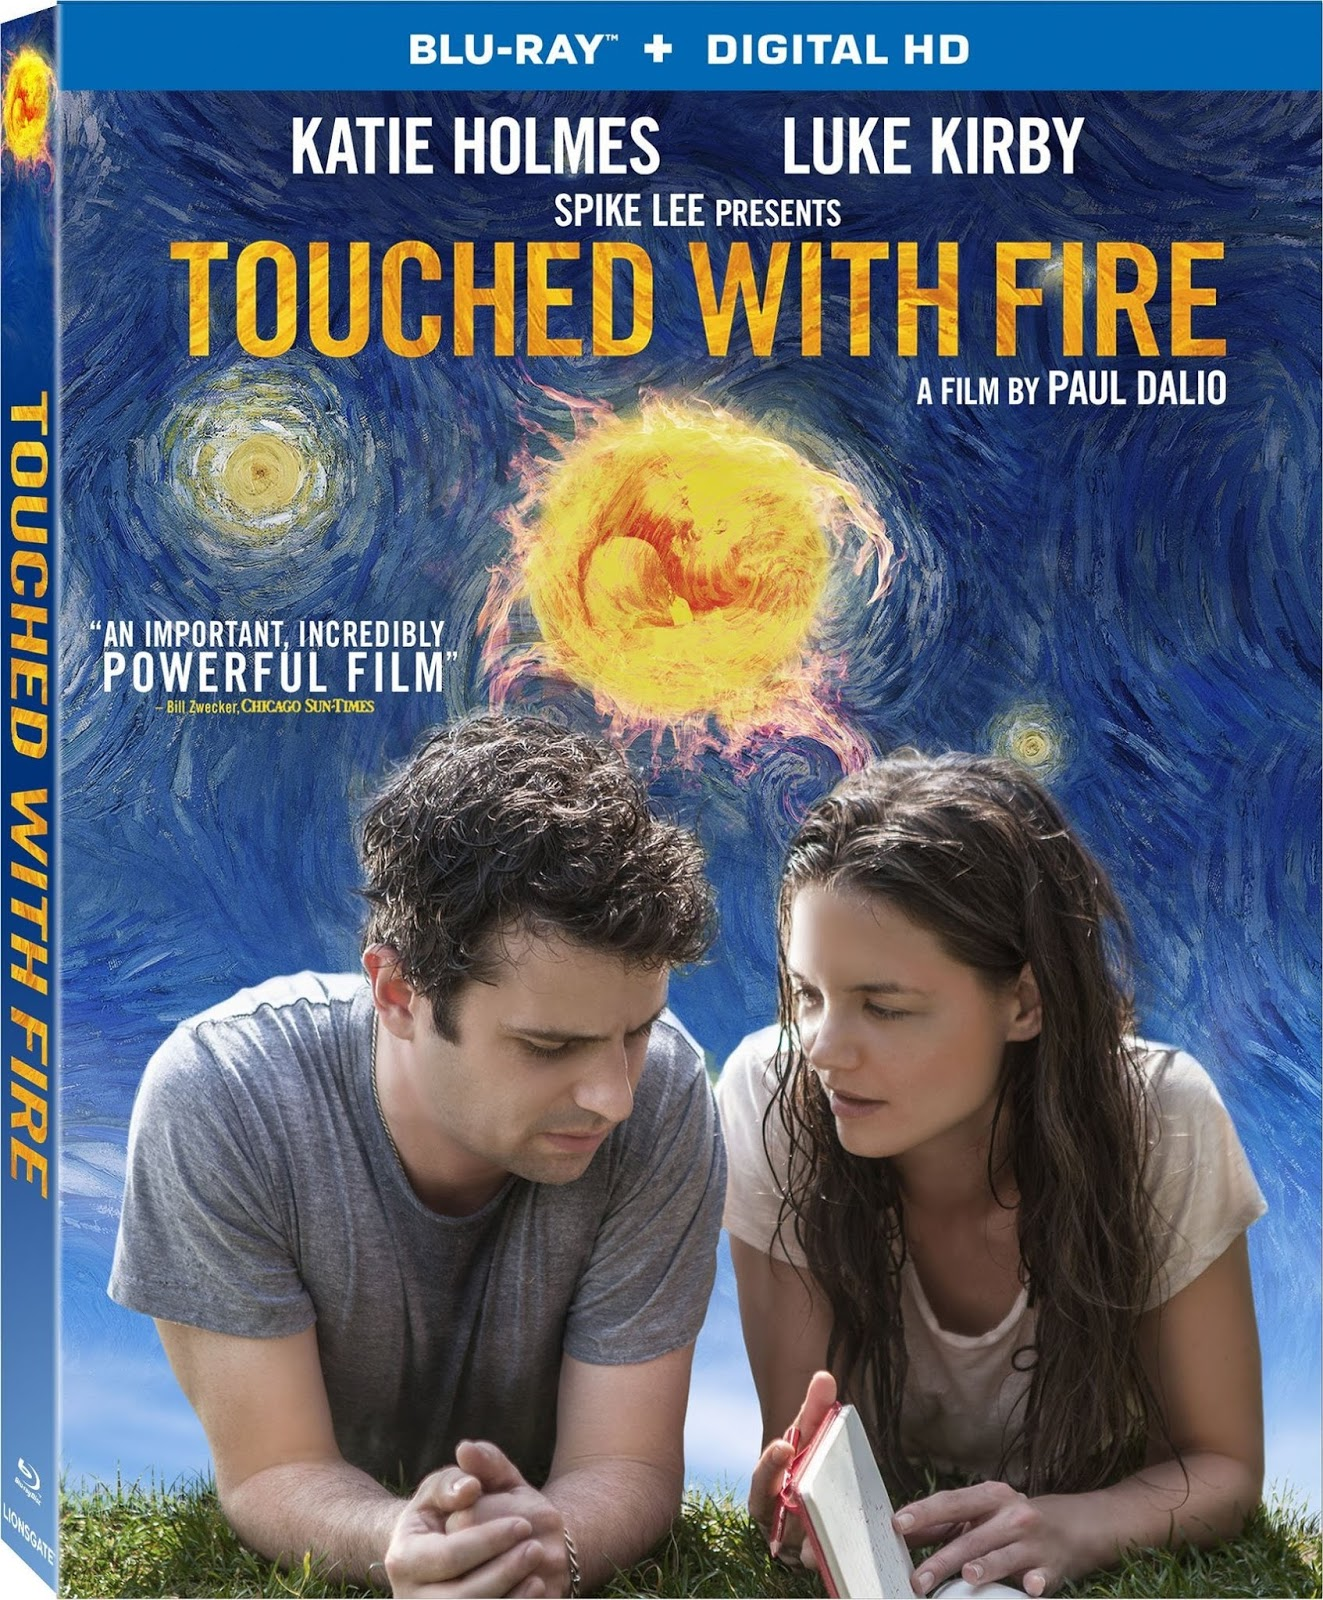 TOUCHED WITH FIRE DOWNLOAD